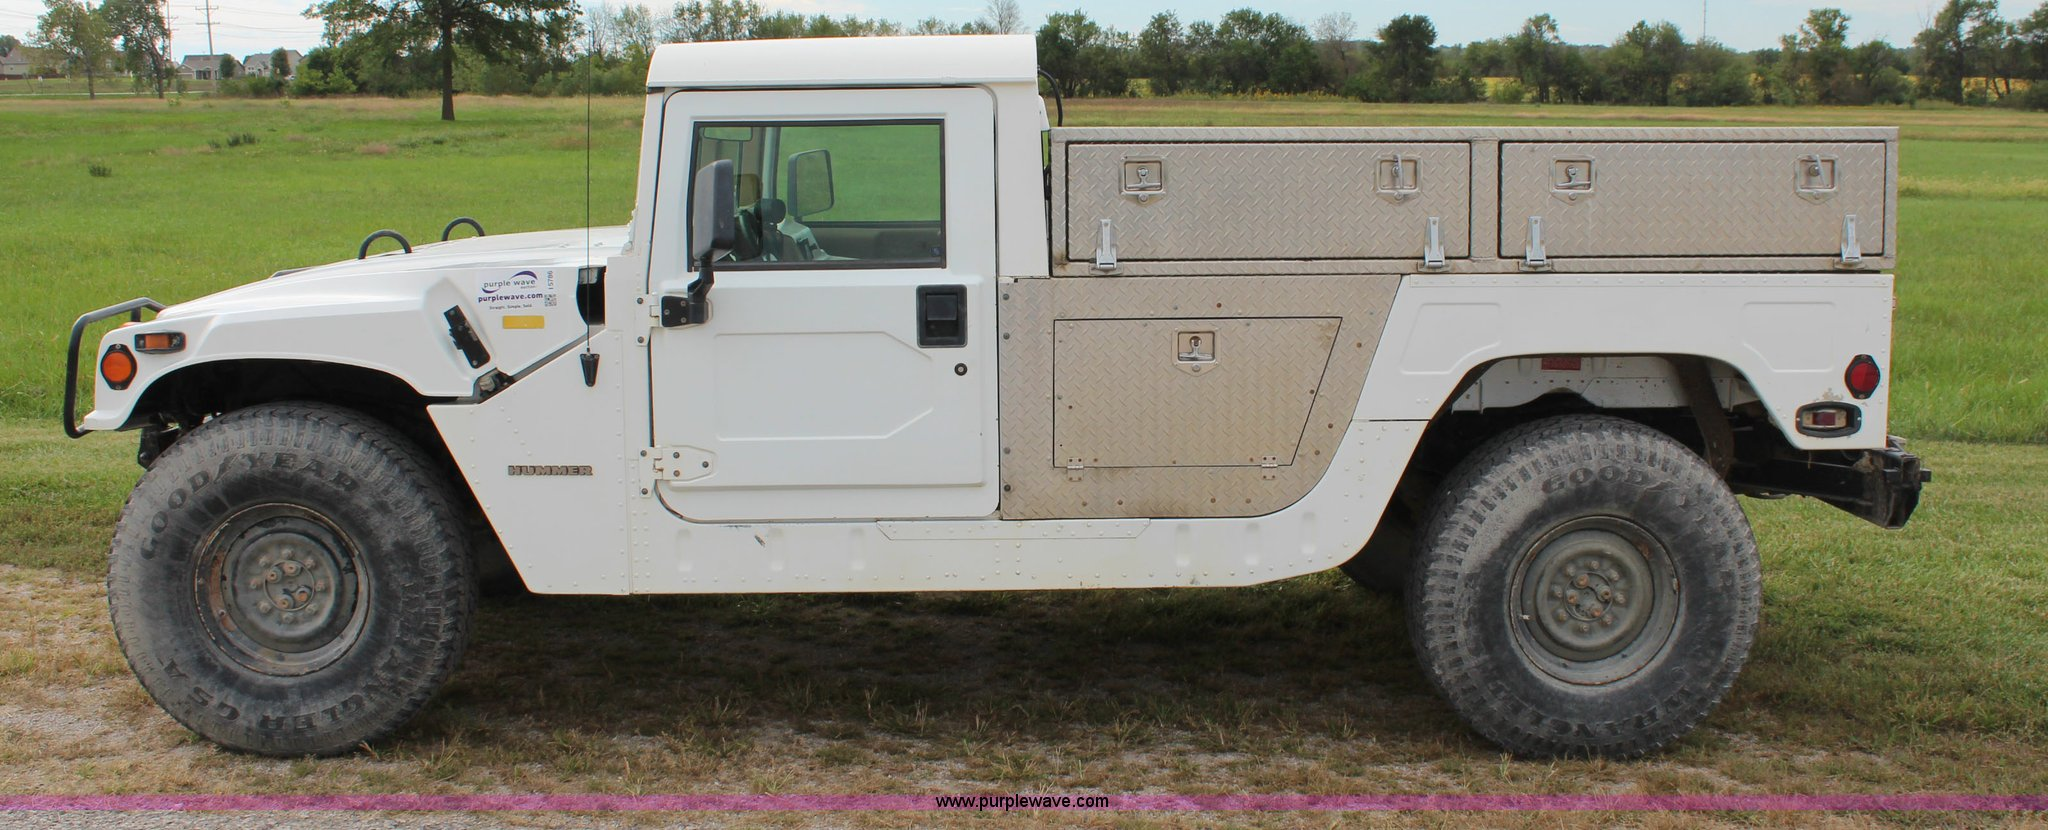 1995 am general hummer recruit full size in new window